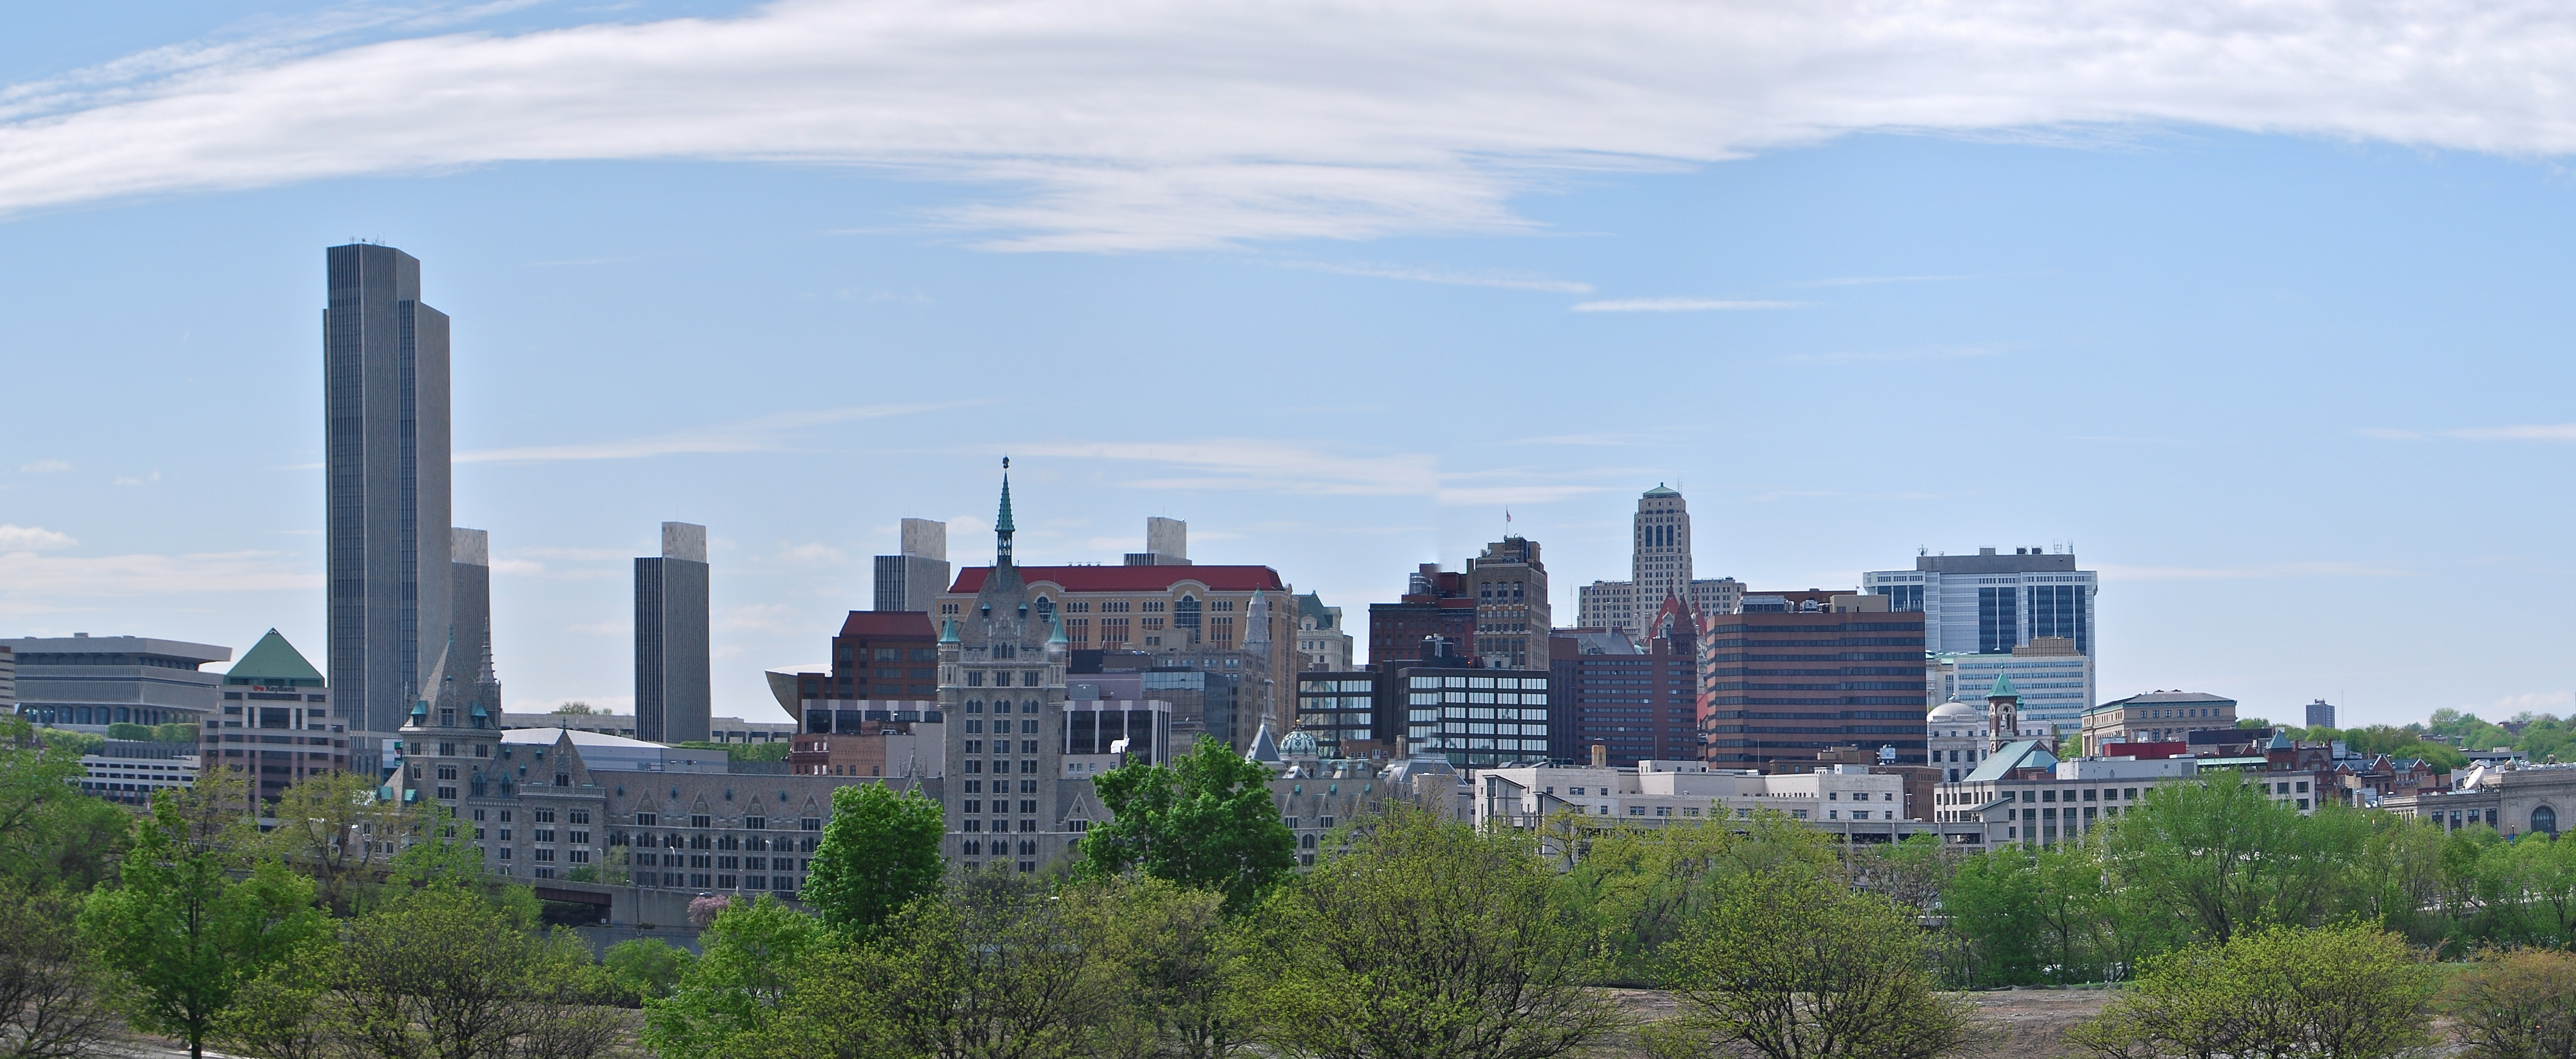 Guide Albany - le guide touristique pour visiter Albany